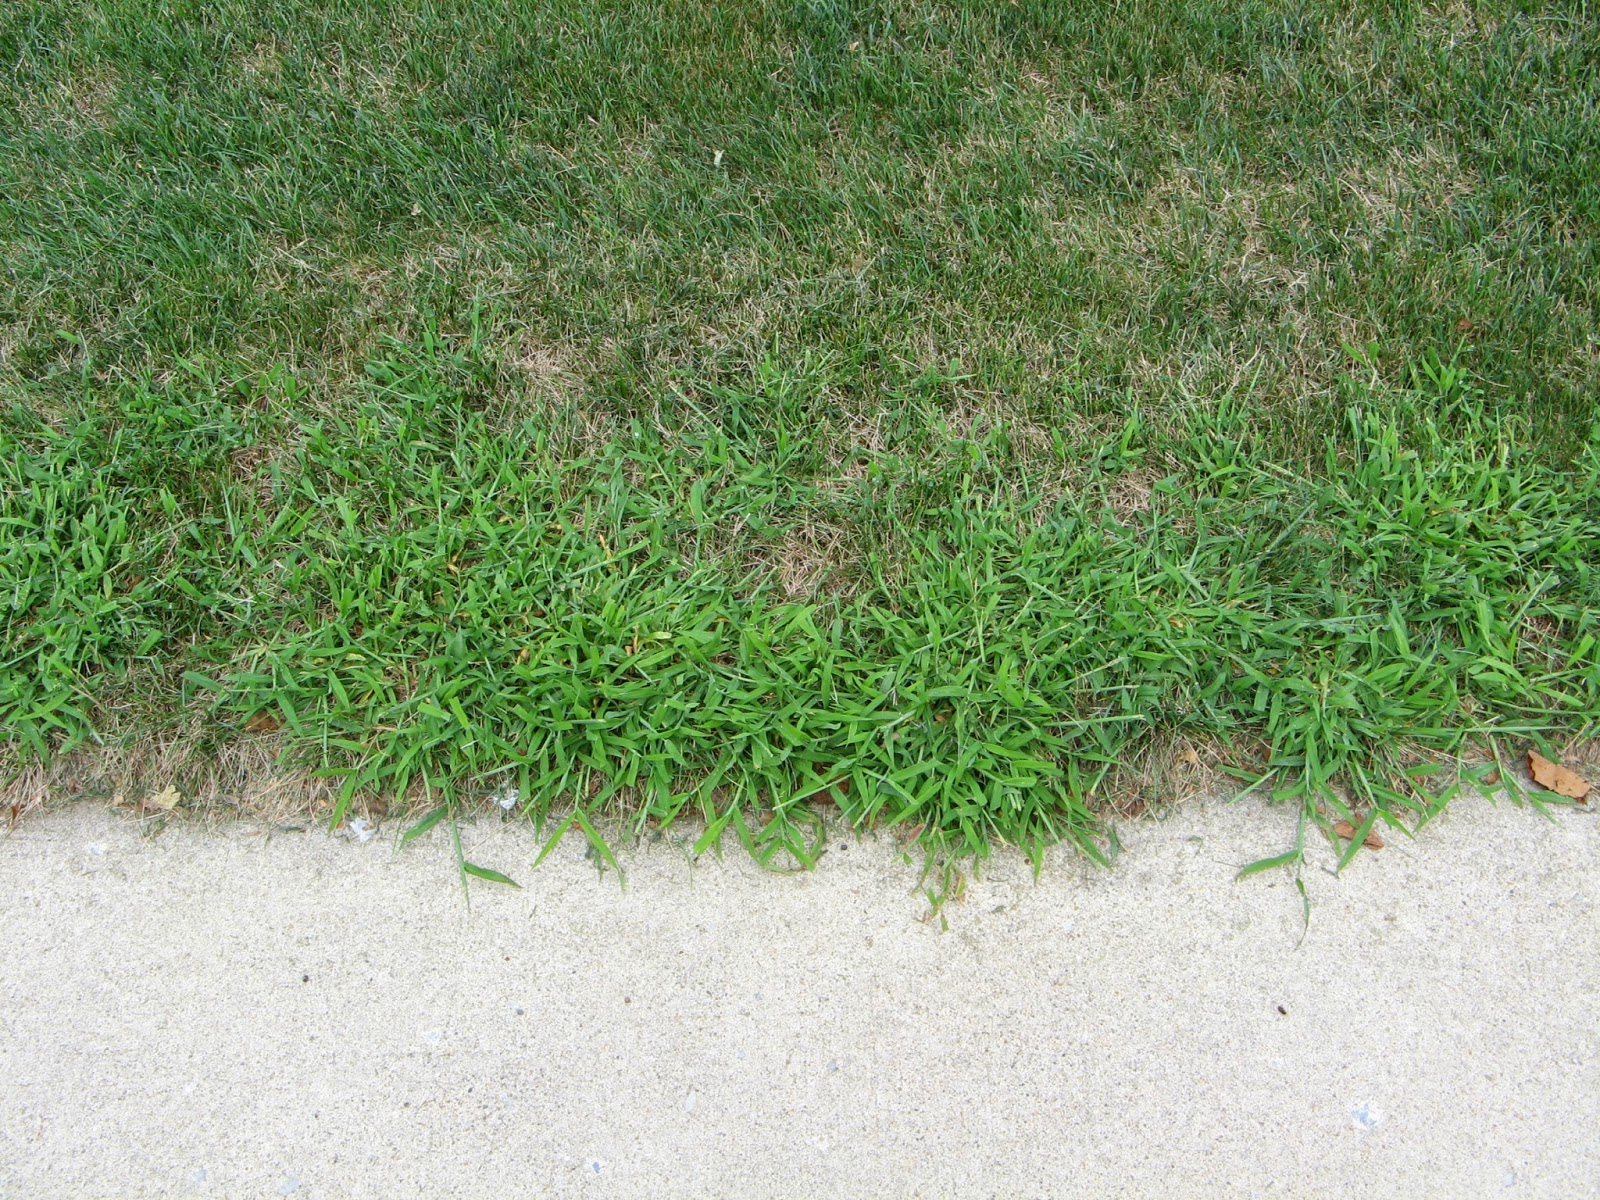 How To Deal With Crabgrass - Featured Image